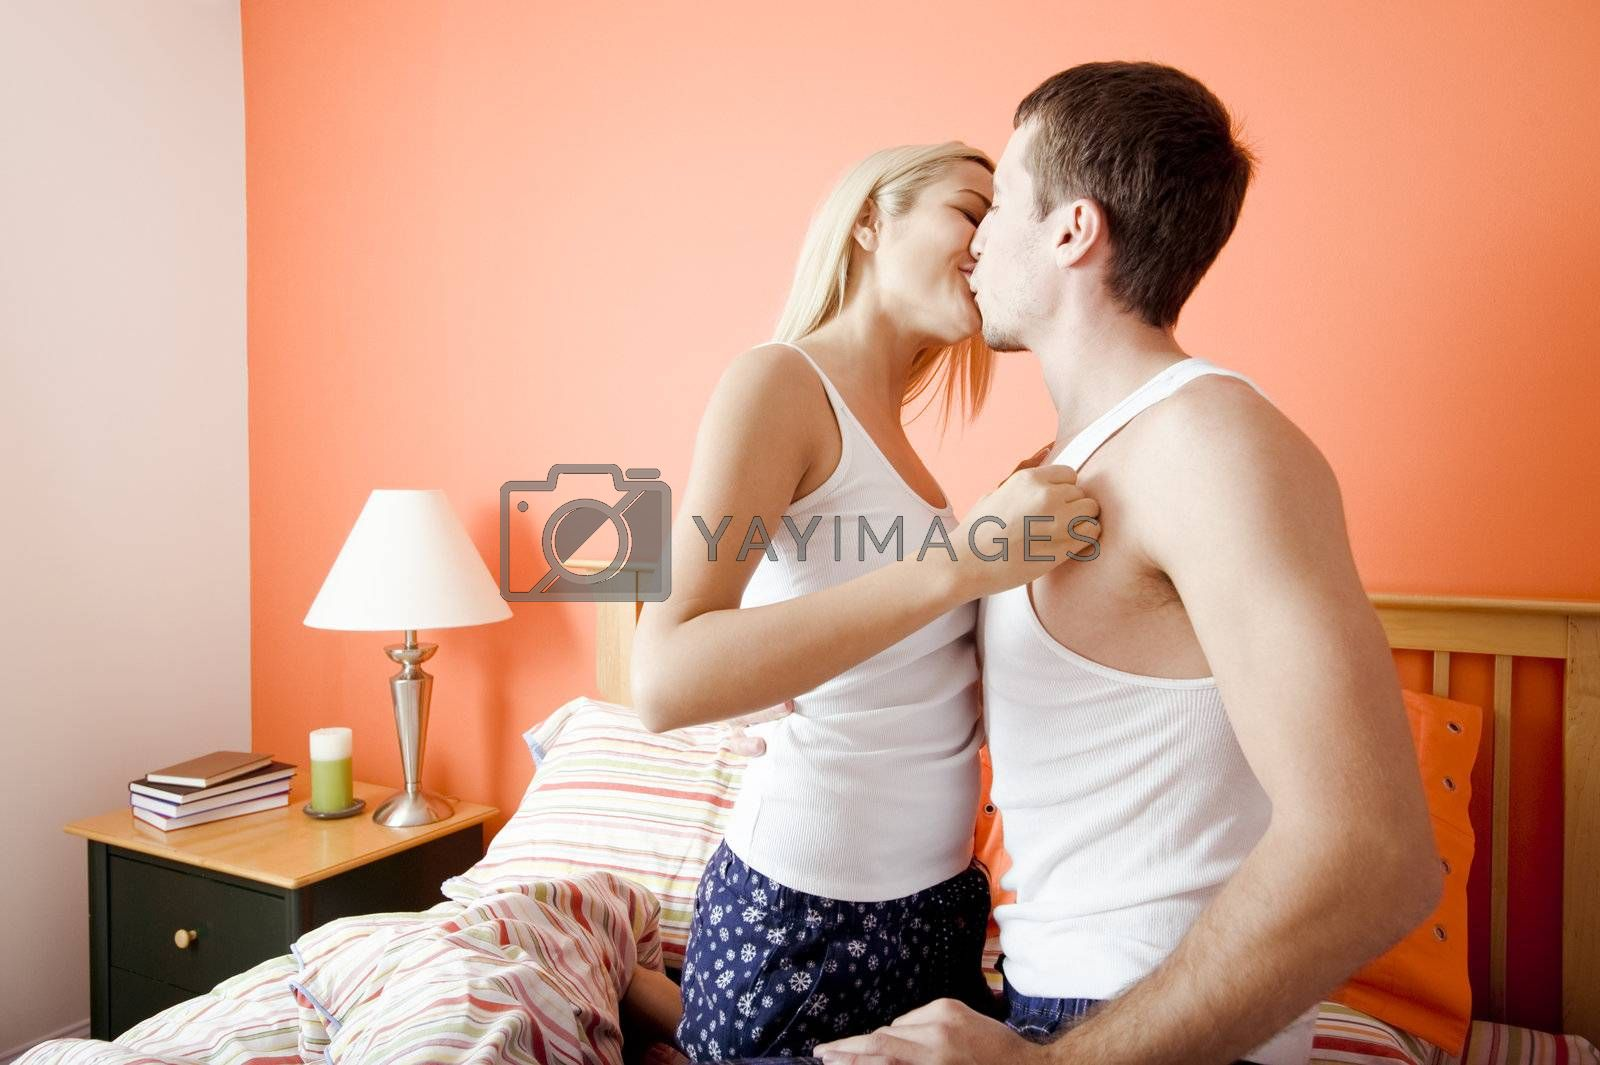 Young couple wearing white tank tops kiss passionately while kneeling on bed. Horizontal shot.